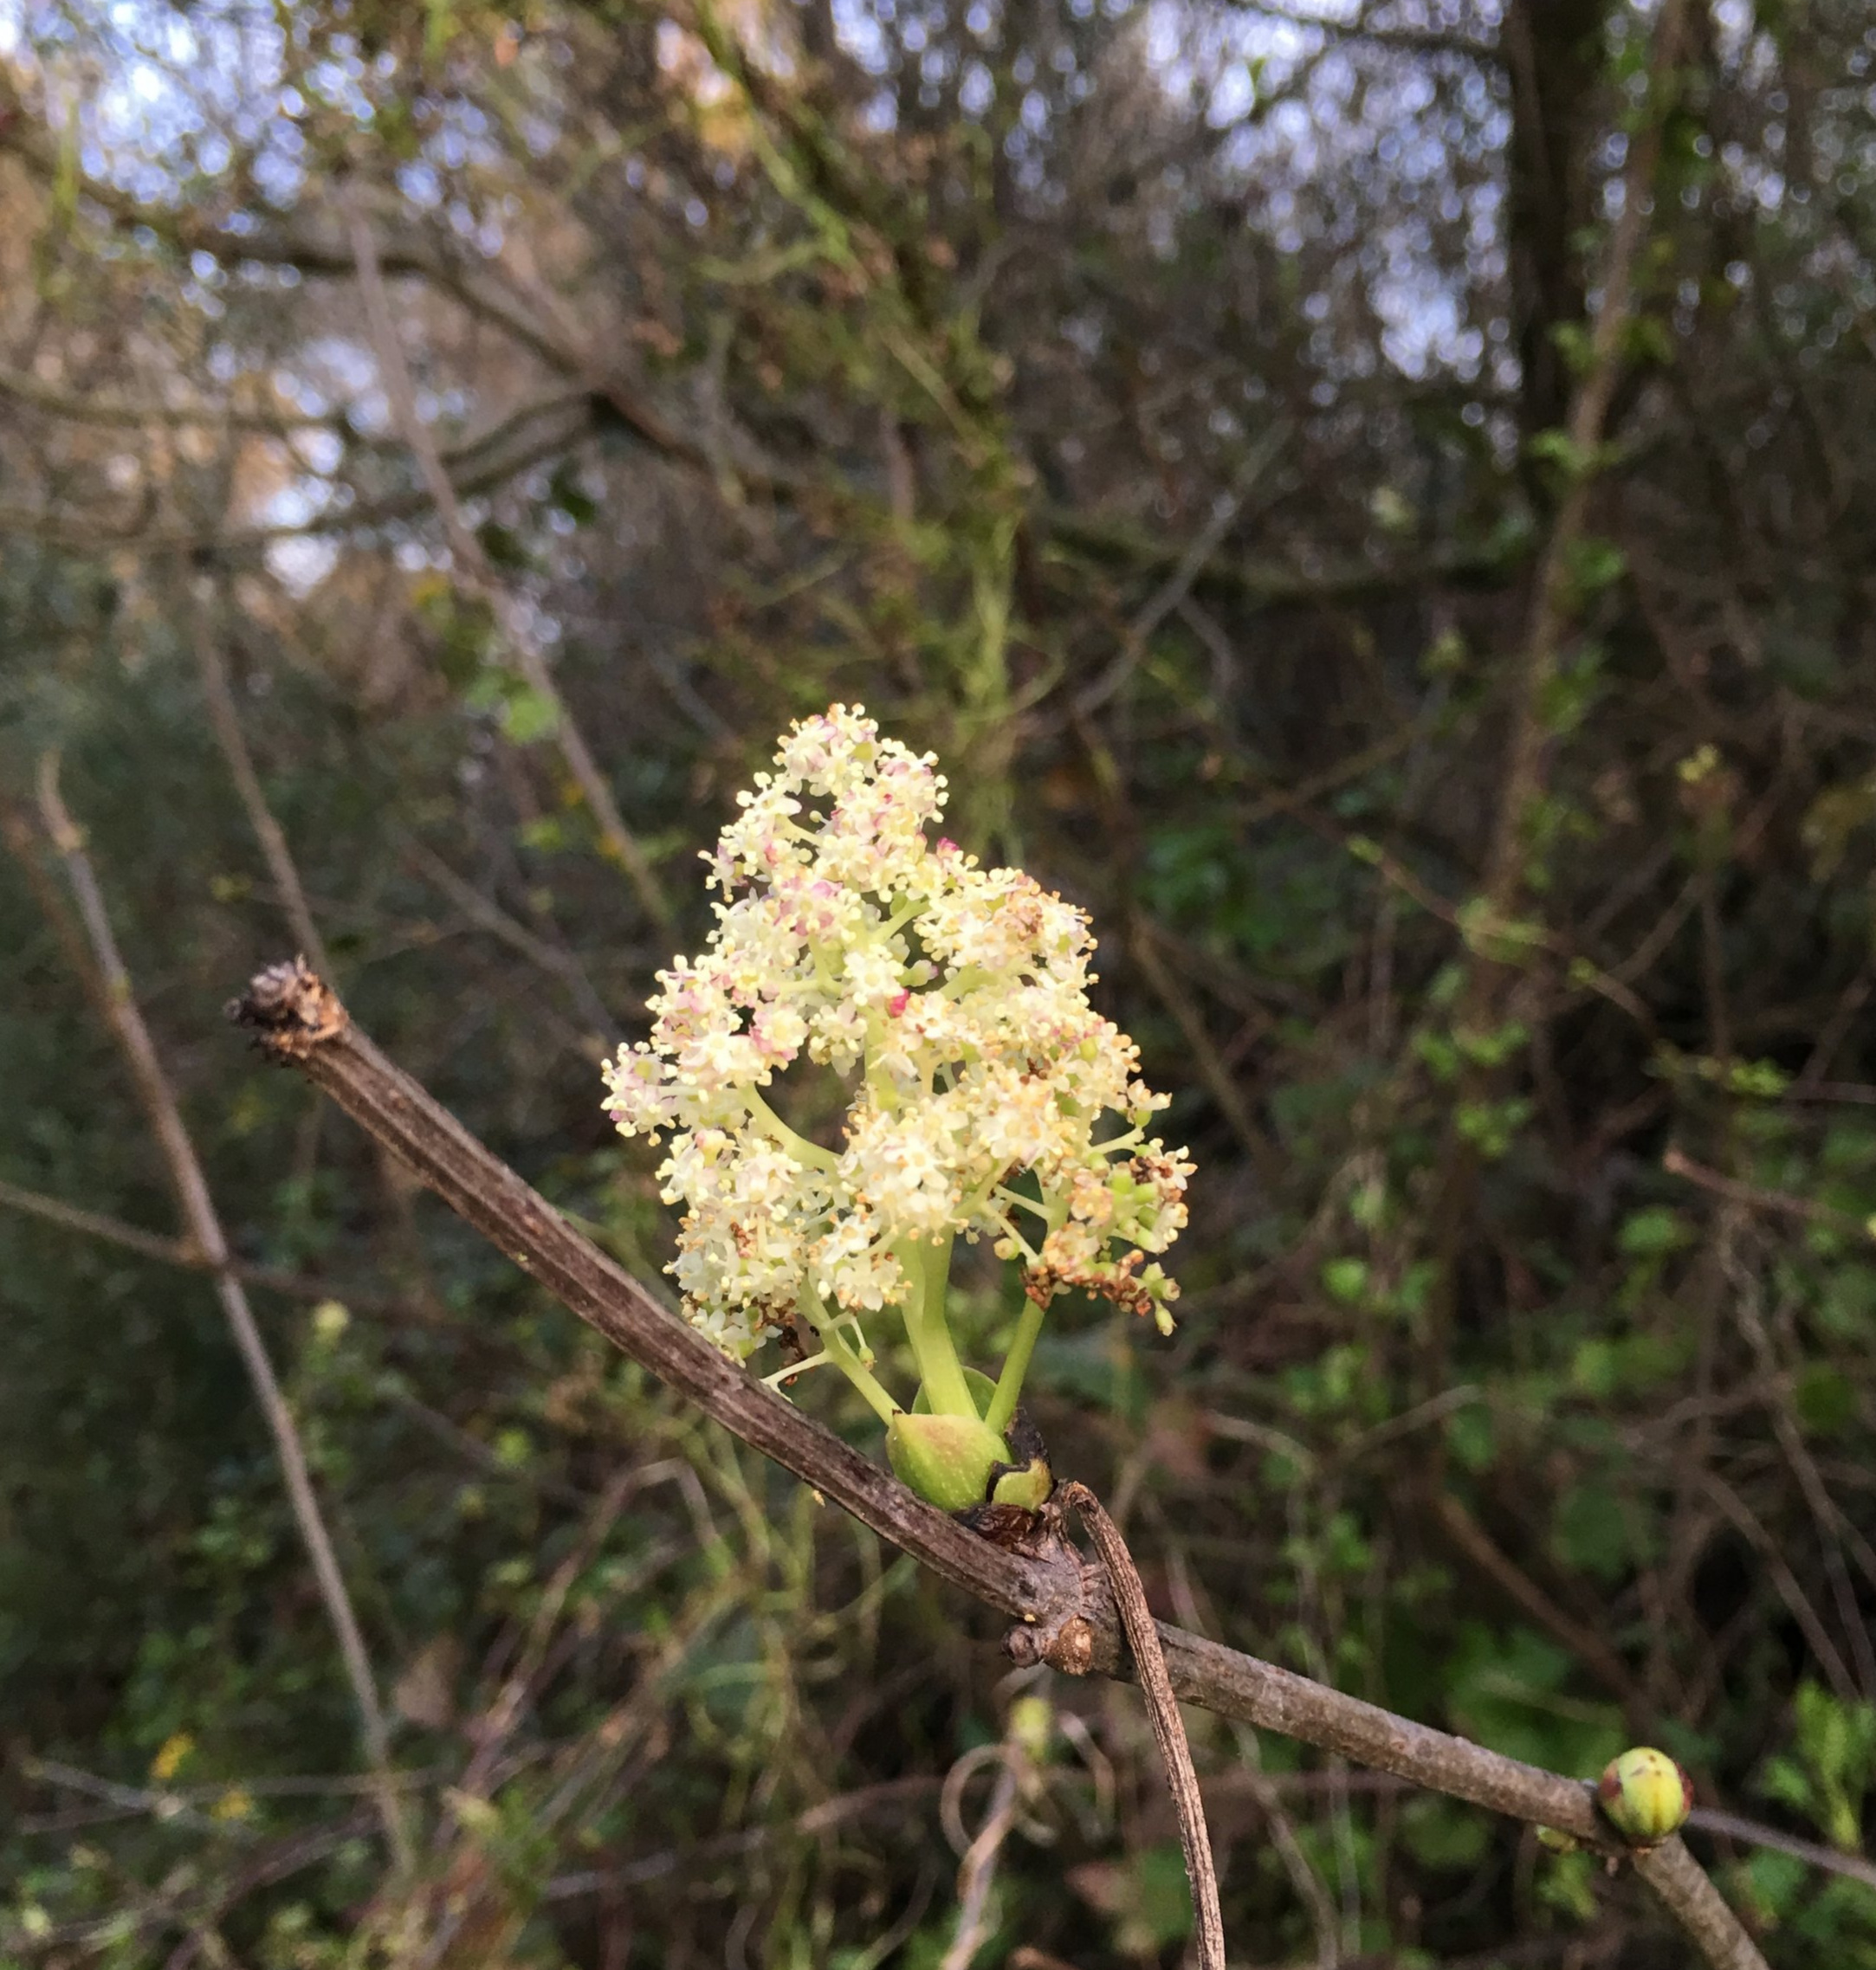 Red elderberry inflorescence